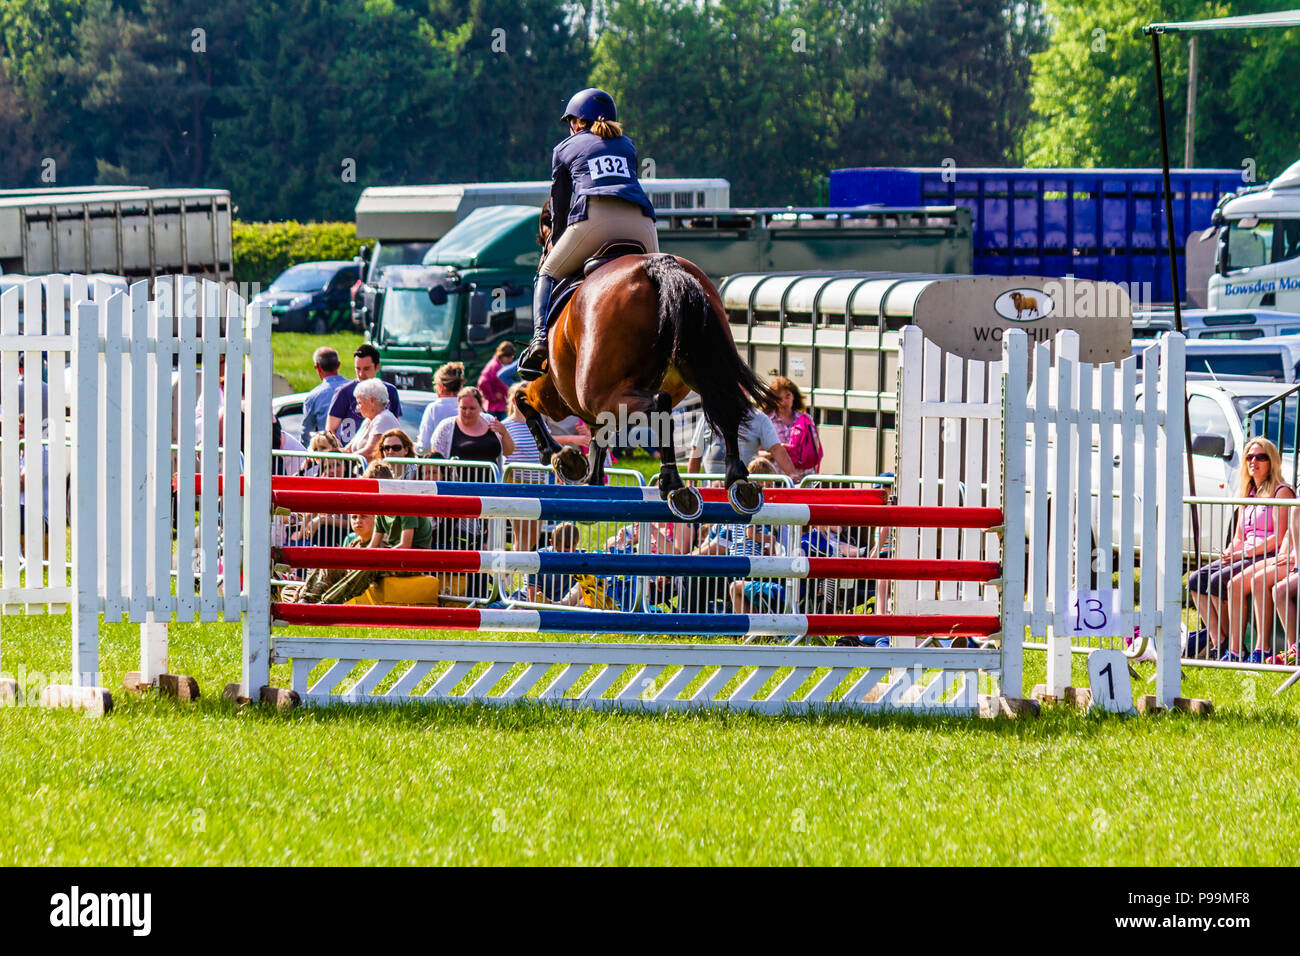 Show jumping at Northumberland County Show, 2018. - Stock Image